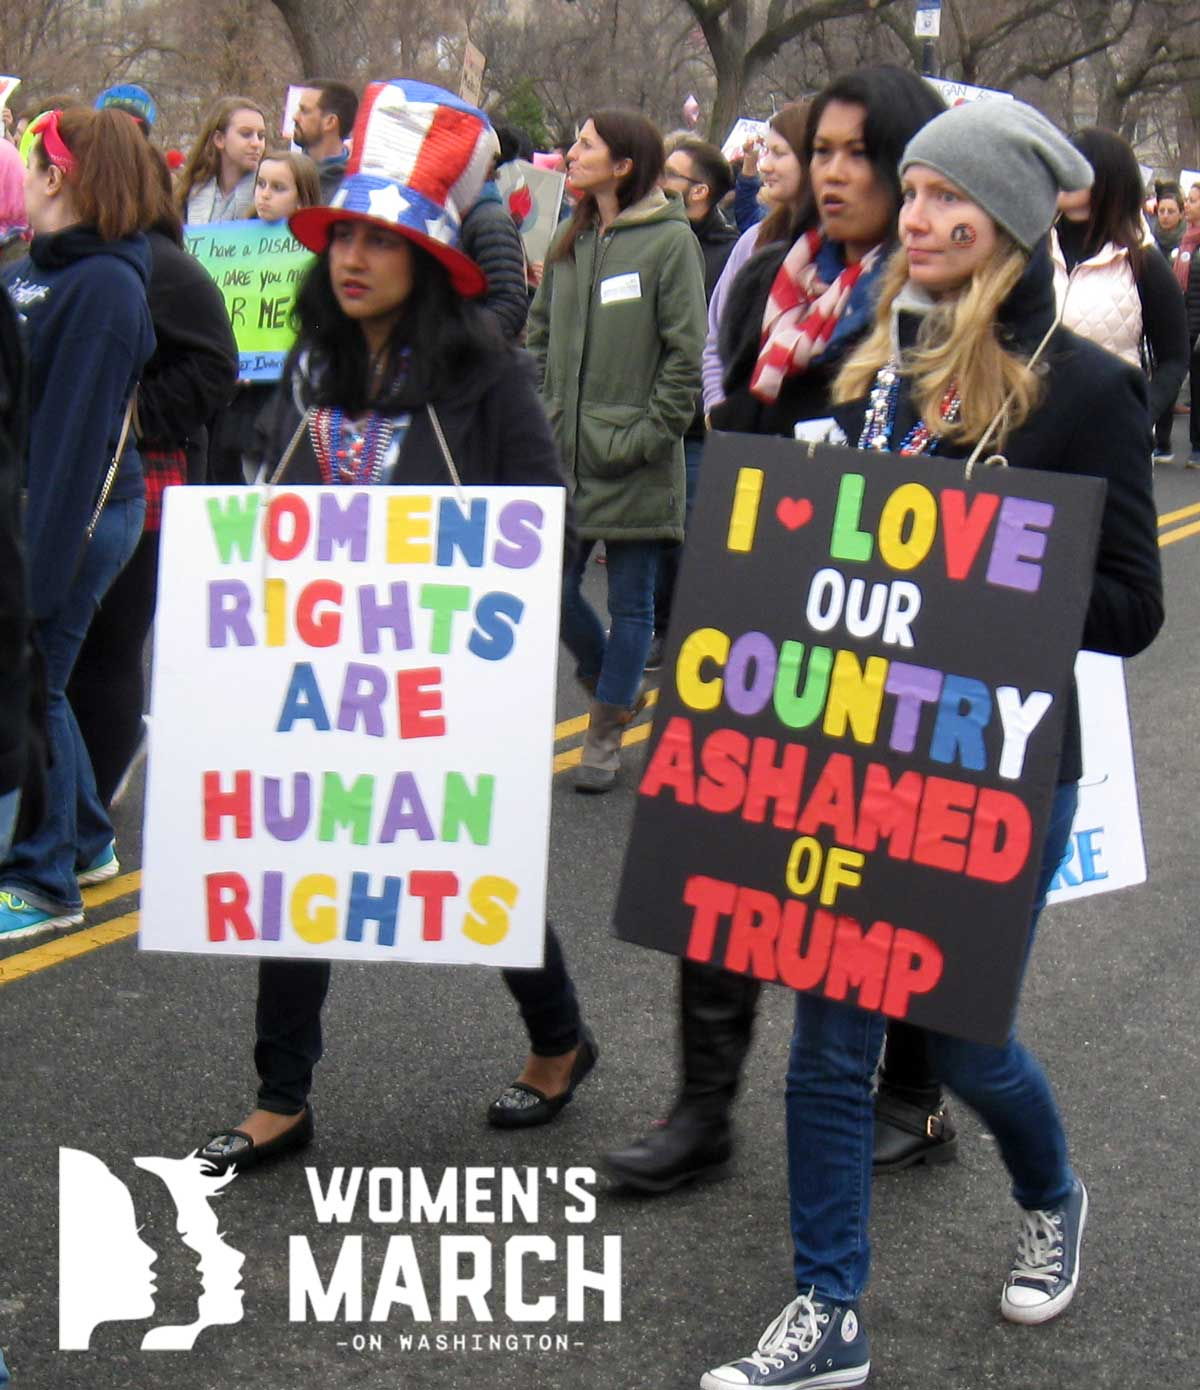 """""""Women's rights are human rights."""" """"I love our country. Ashamed of Trump."""""""